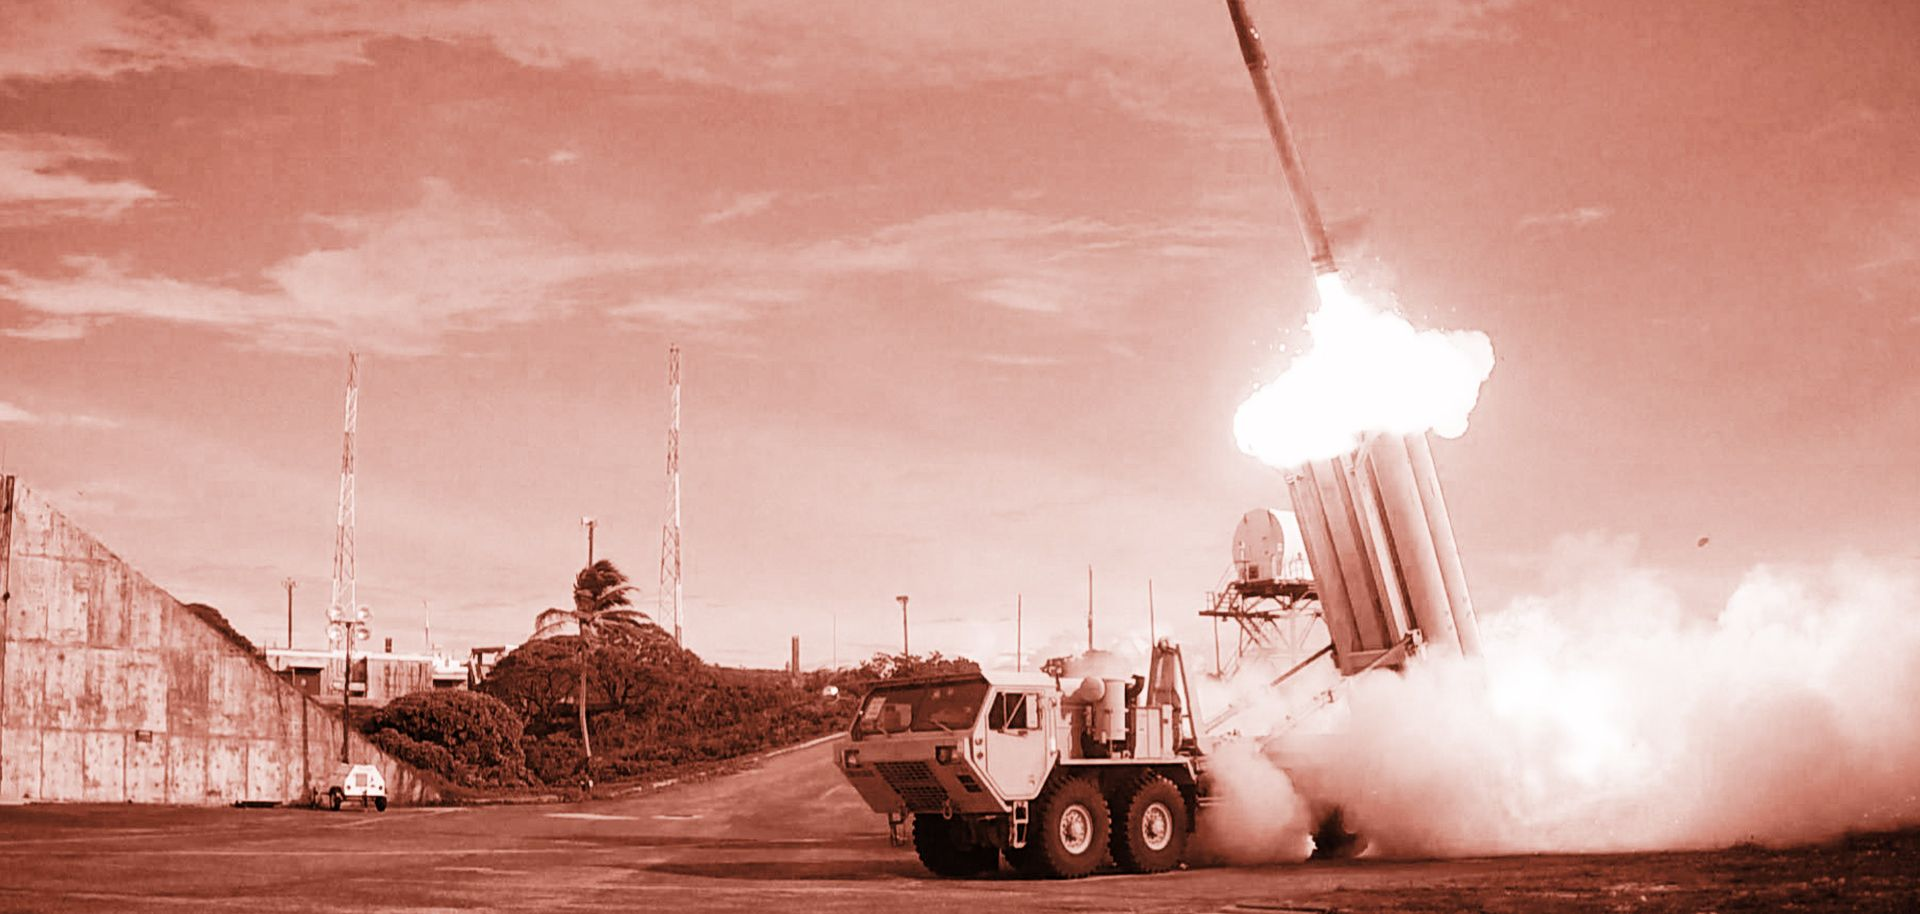 The first of two Terminal High Altitude Area Defense (THAAD) interceptors is launched during a successful intercept test by the U.S. Missile Defense Agency.